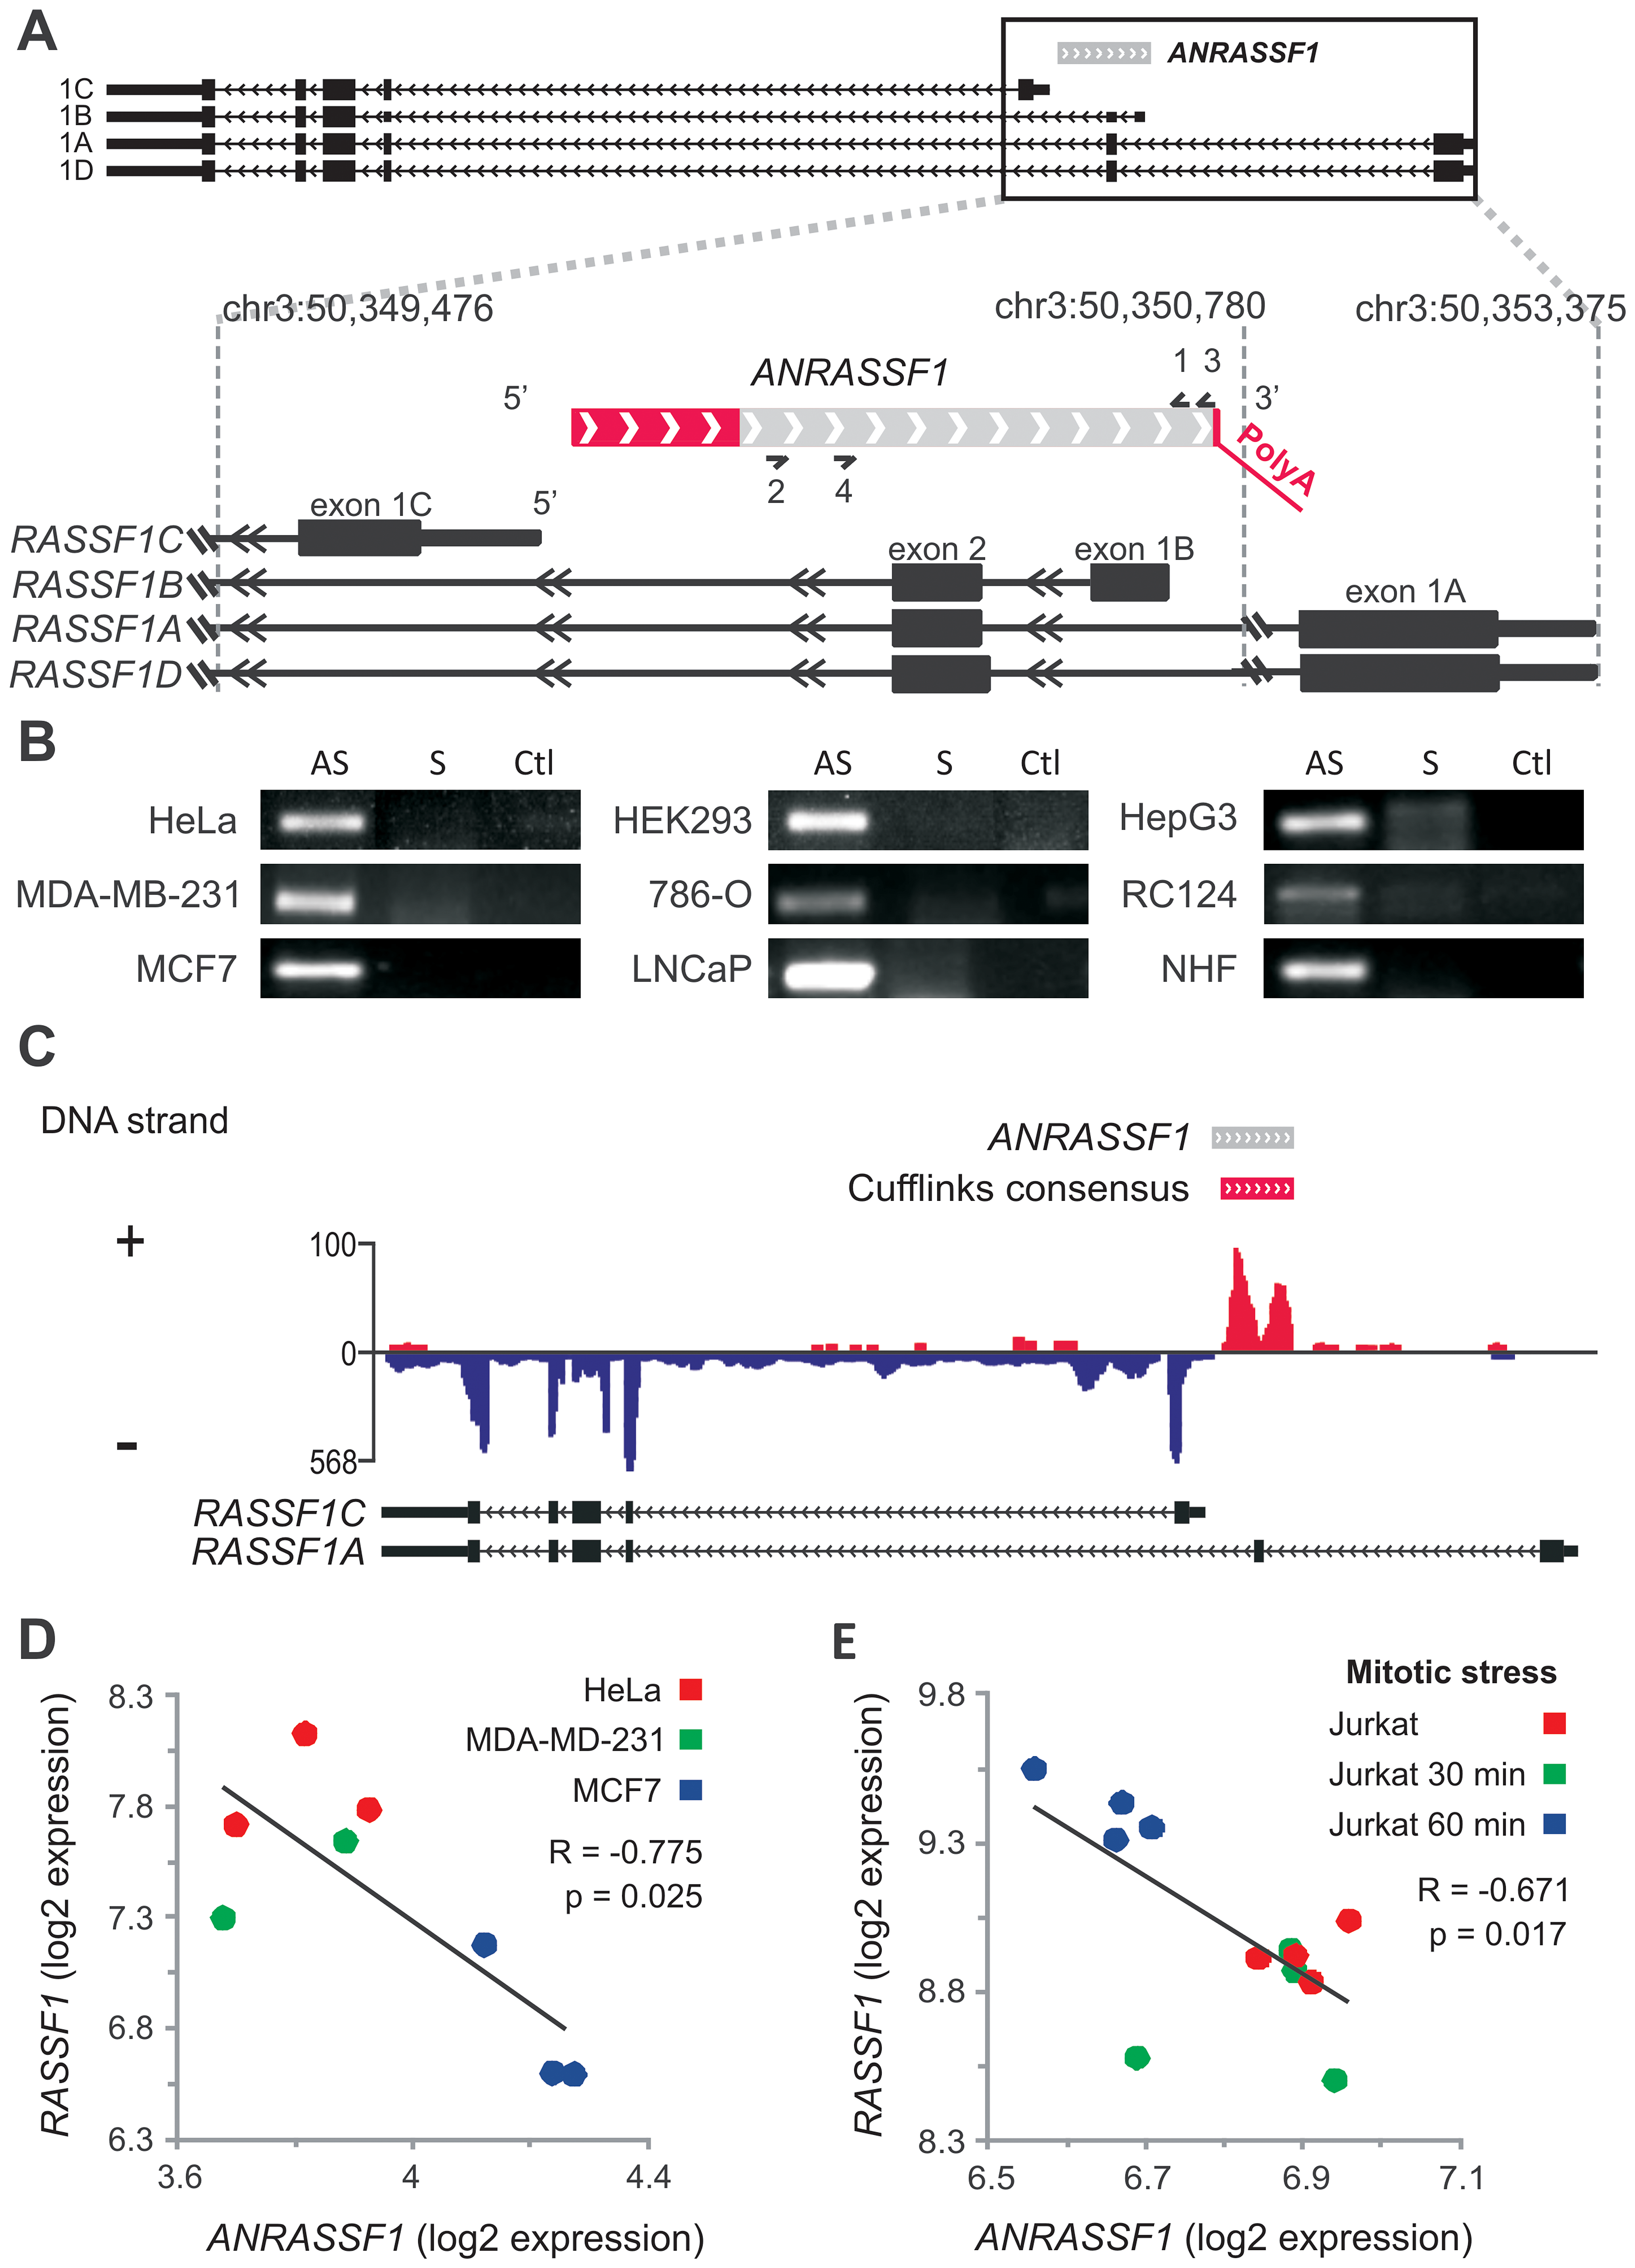 Antisense noncoding RNA <i>ANRASSF1</i> is expressed within the <i>RASSF1</i> genomic locus and inversely correlated with <i>RASSF1</i> expression.